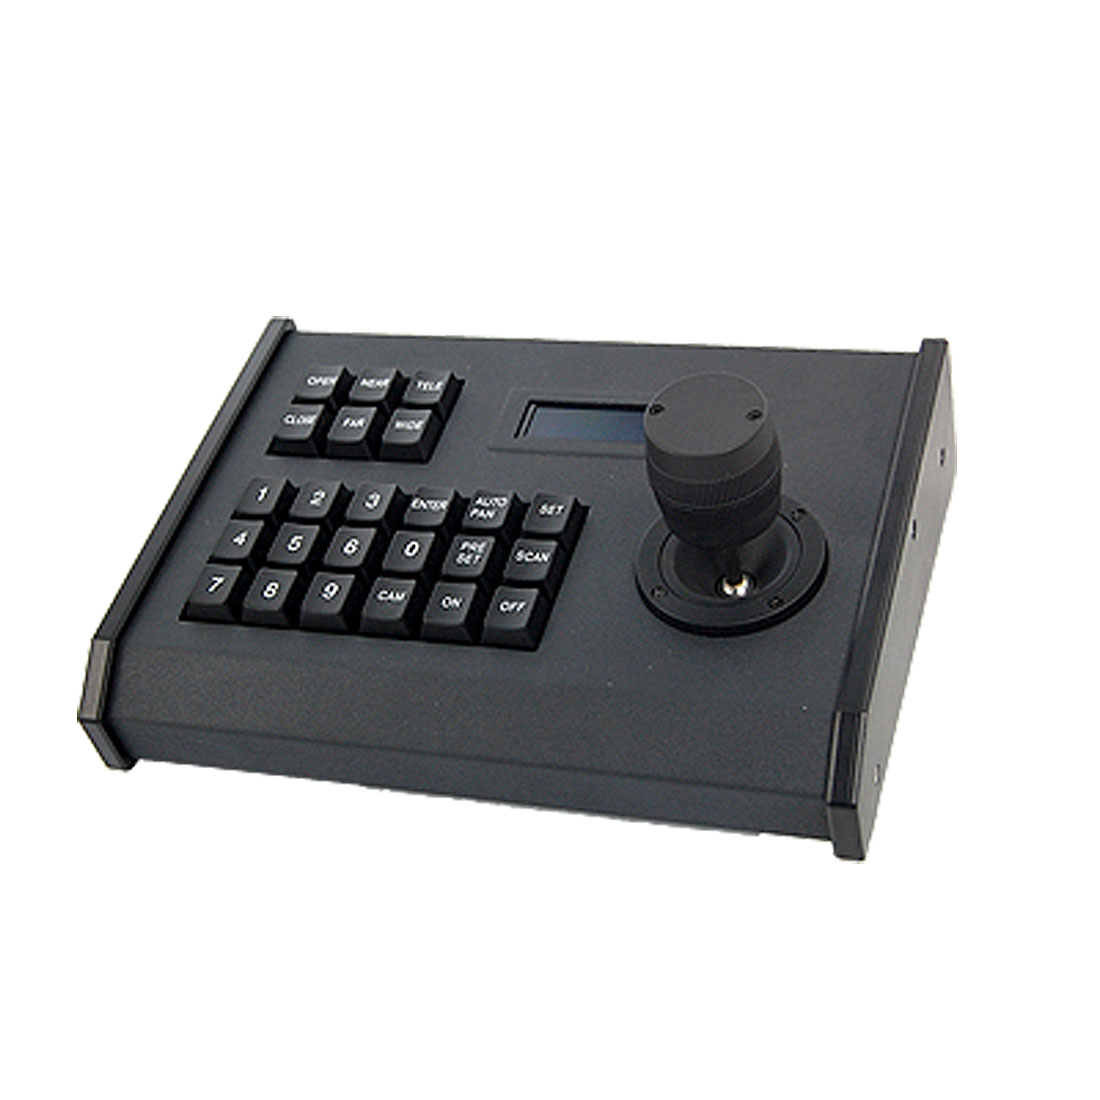 EU Plug AC 100 - 265V Metal Case RS485 Port CCTV Camera Keyboard Controller